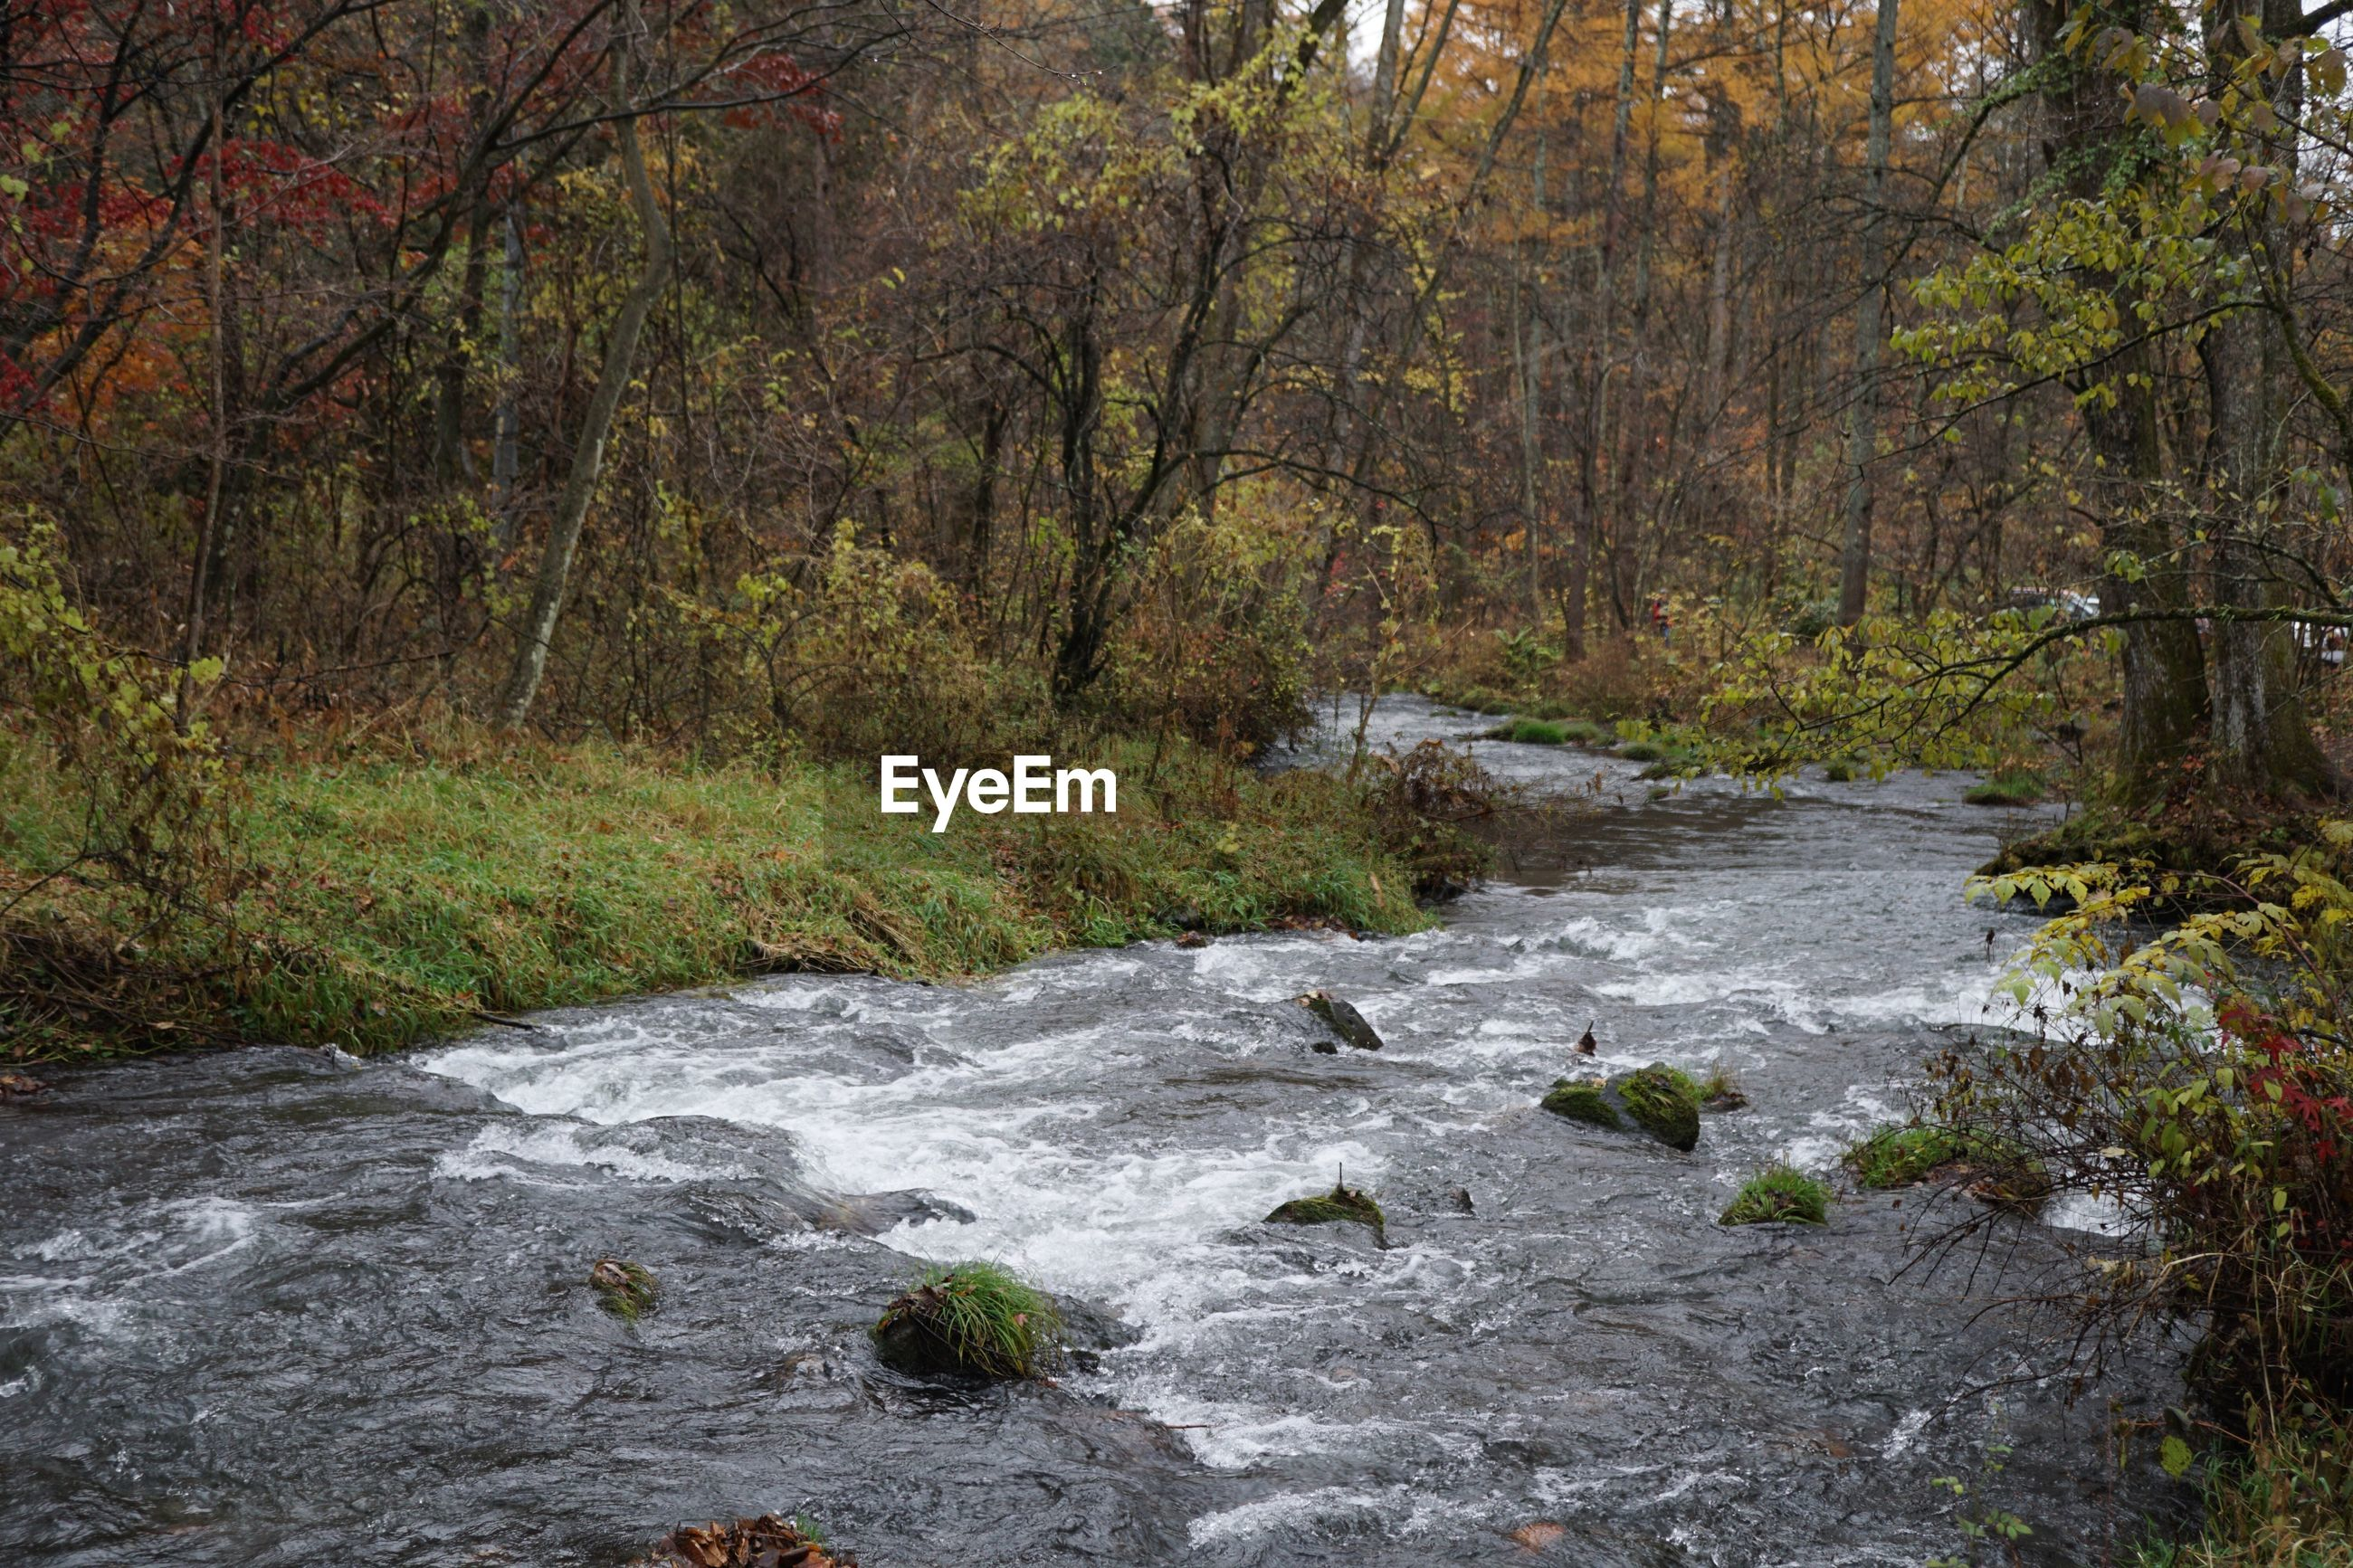 forest, tree, land, water, flowing water, plant, nature, no people, river, day, motion, scenics - nature, flowing, beauty in nature, rock, stream - flowing water, rock - object, solid, tranquility, outdoors, woodland